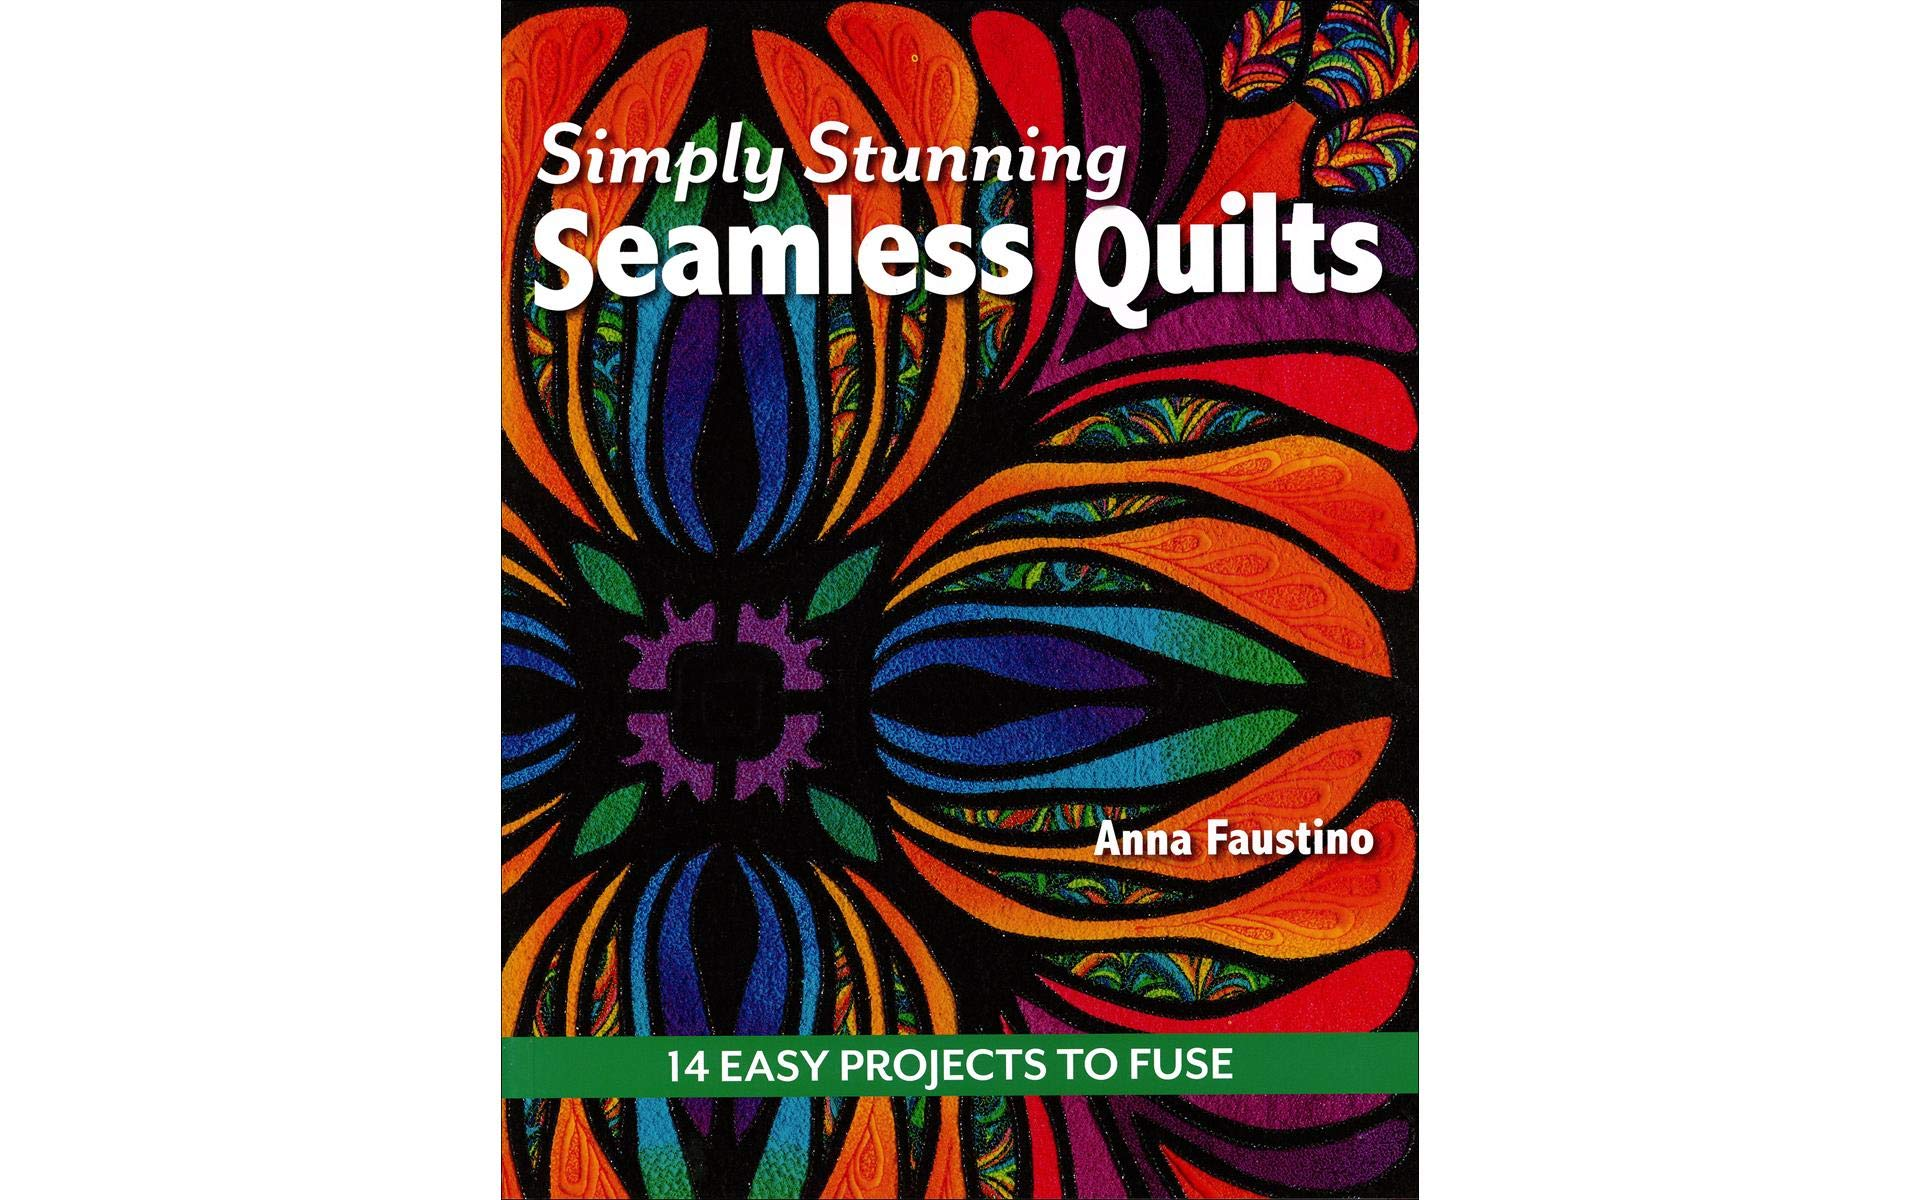 C&T PUBLISHING C&T Simply Stunning Seamless Quilts Bk